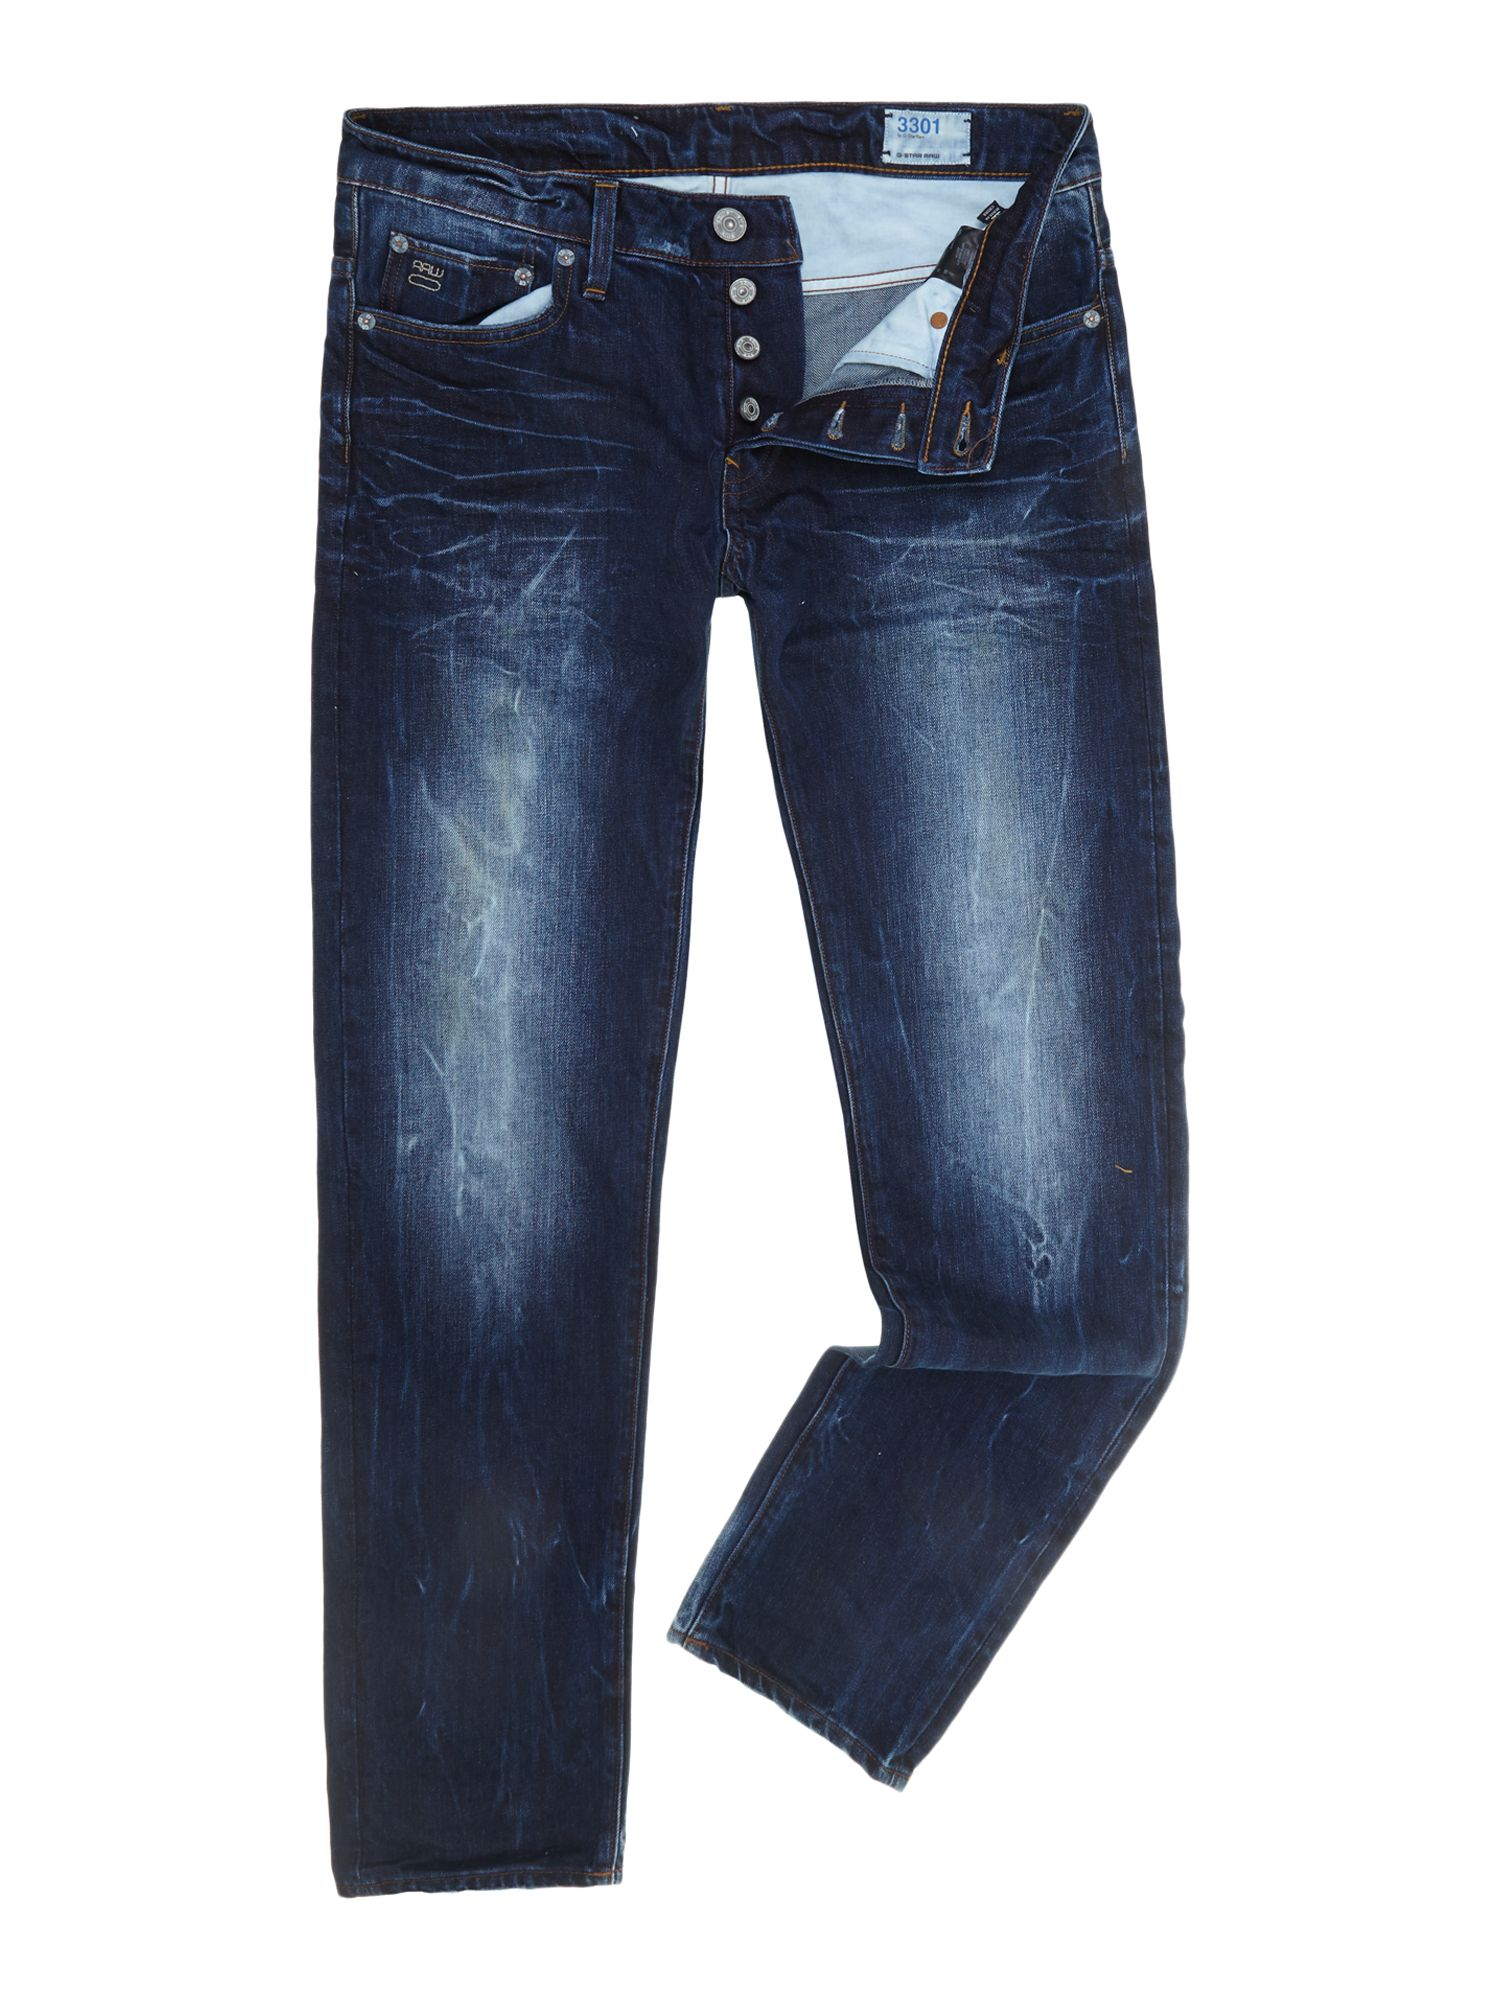 3301 low tapered leg jeans